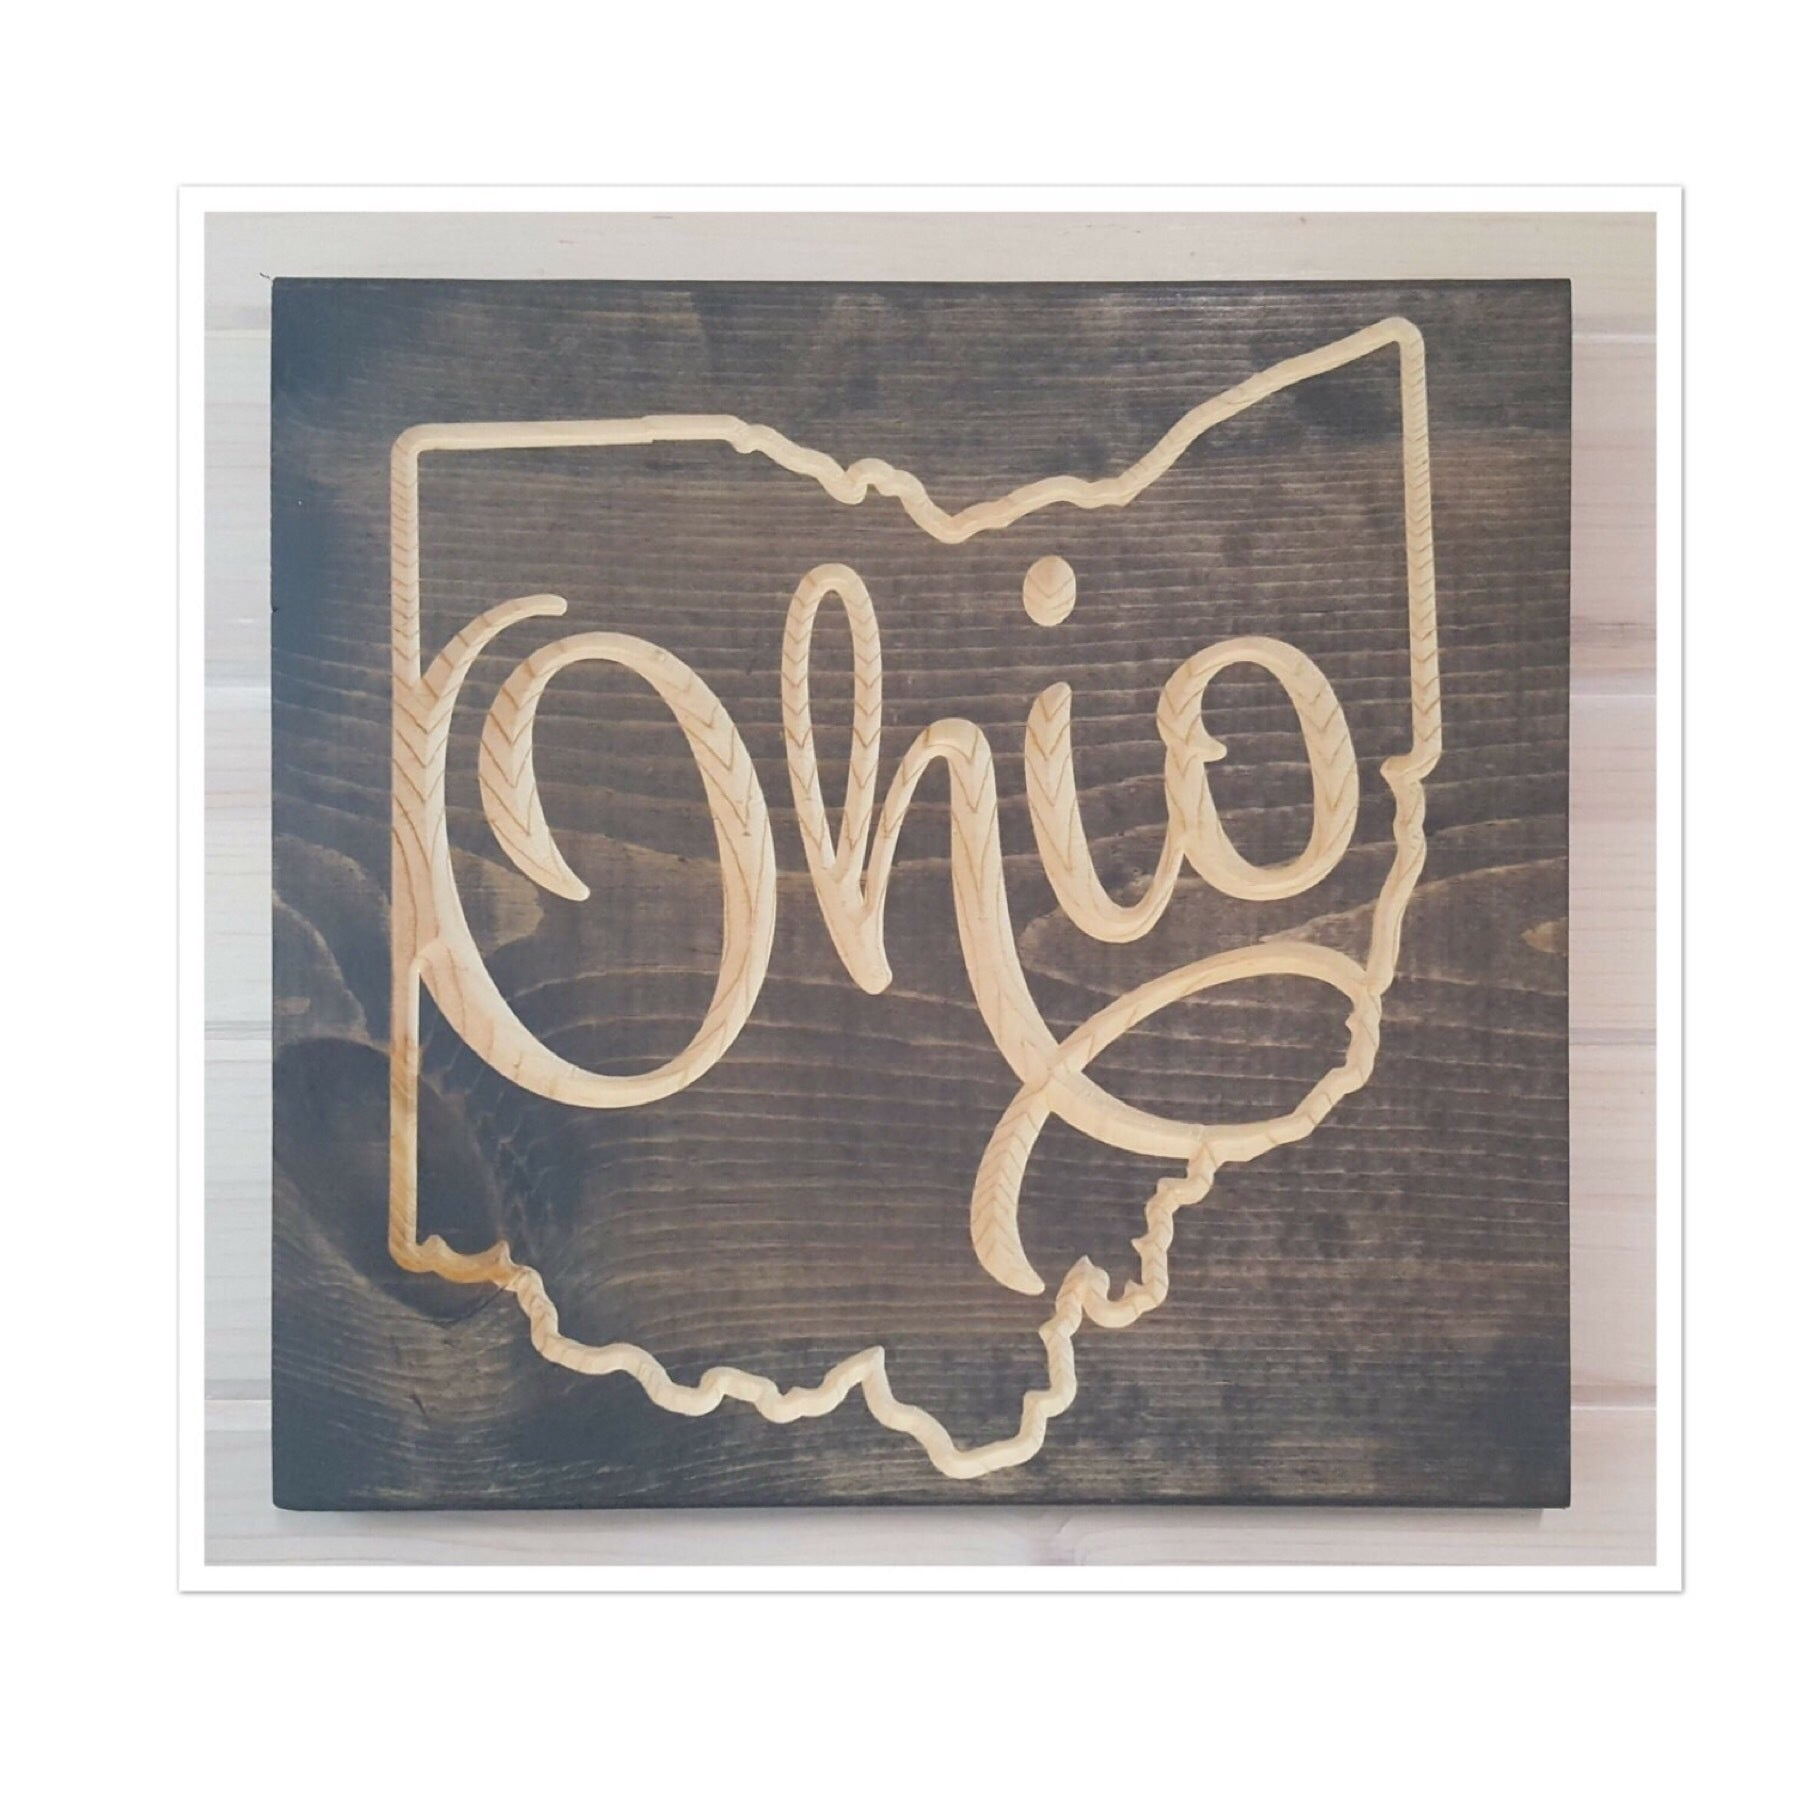 State Of Ohio Scroll Wood Wall Art 12 in x 12 in